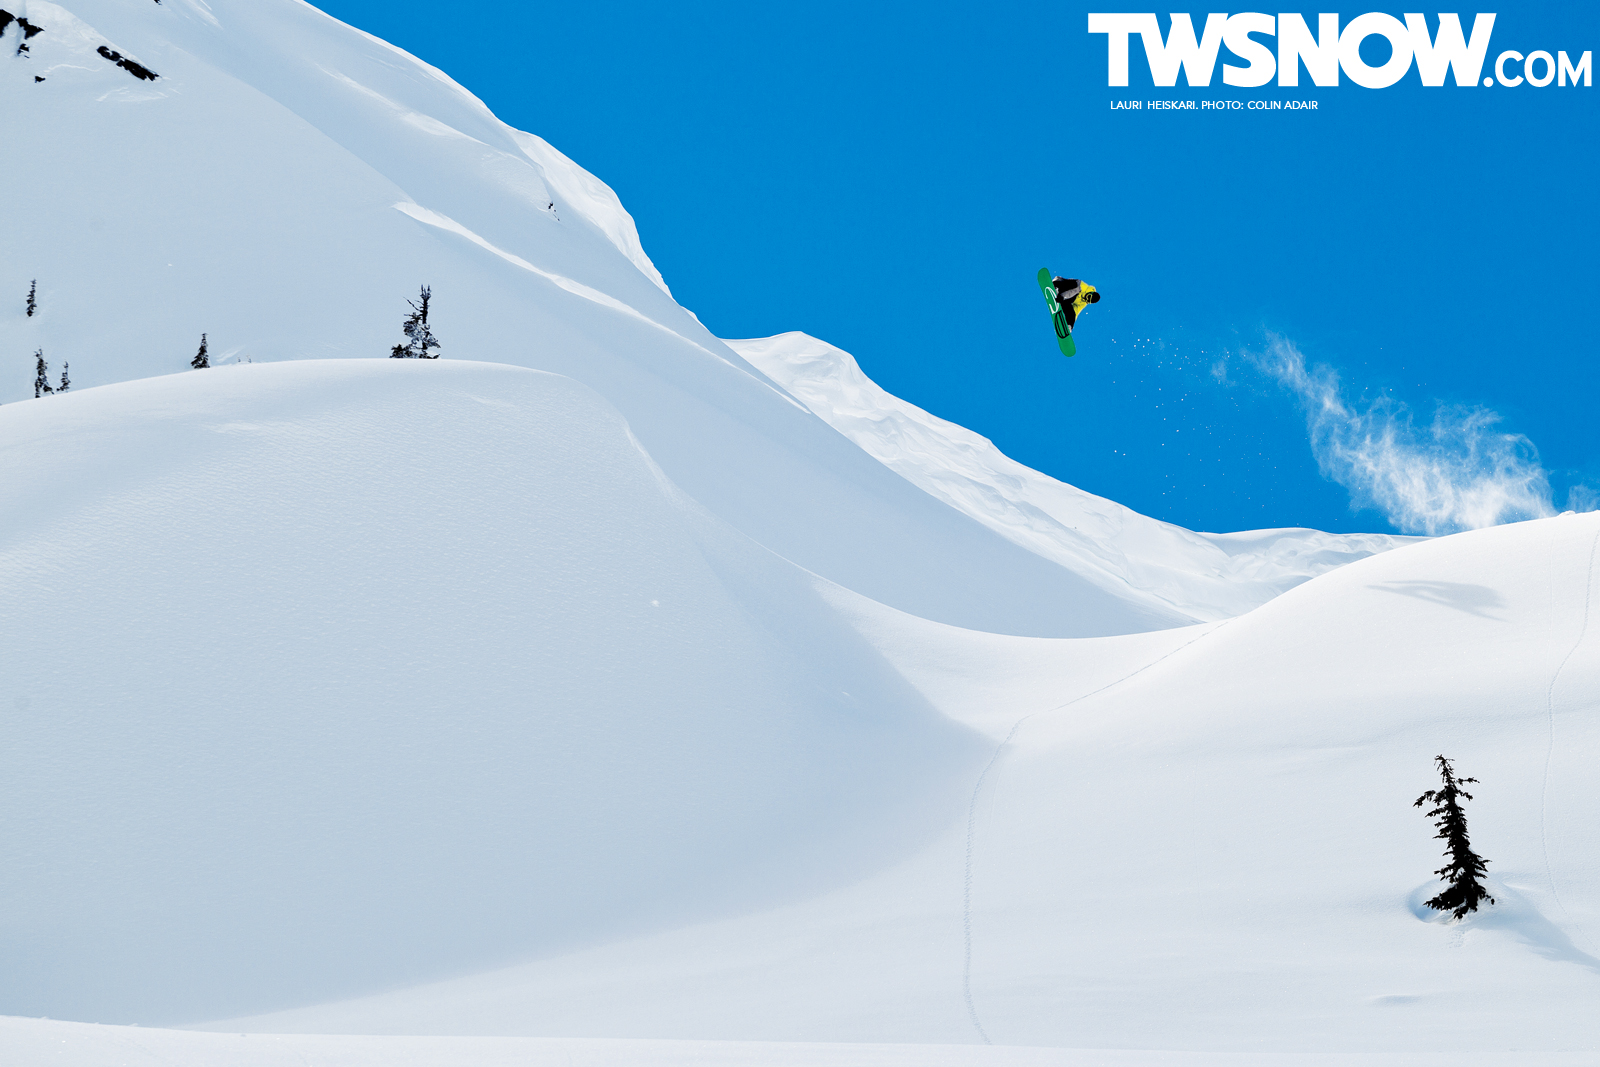 Wallpaper Wednesday Forever Forum TransWorld SNOWboarding 1600x1067